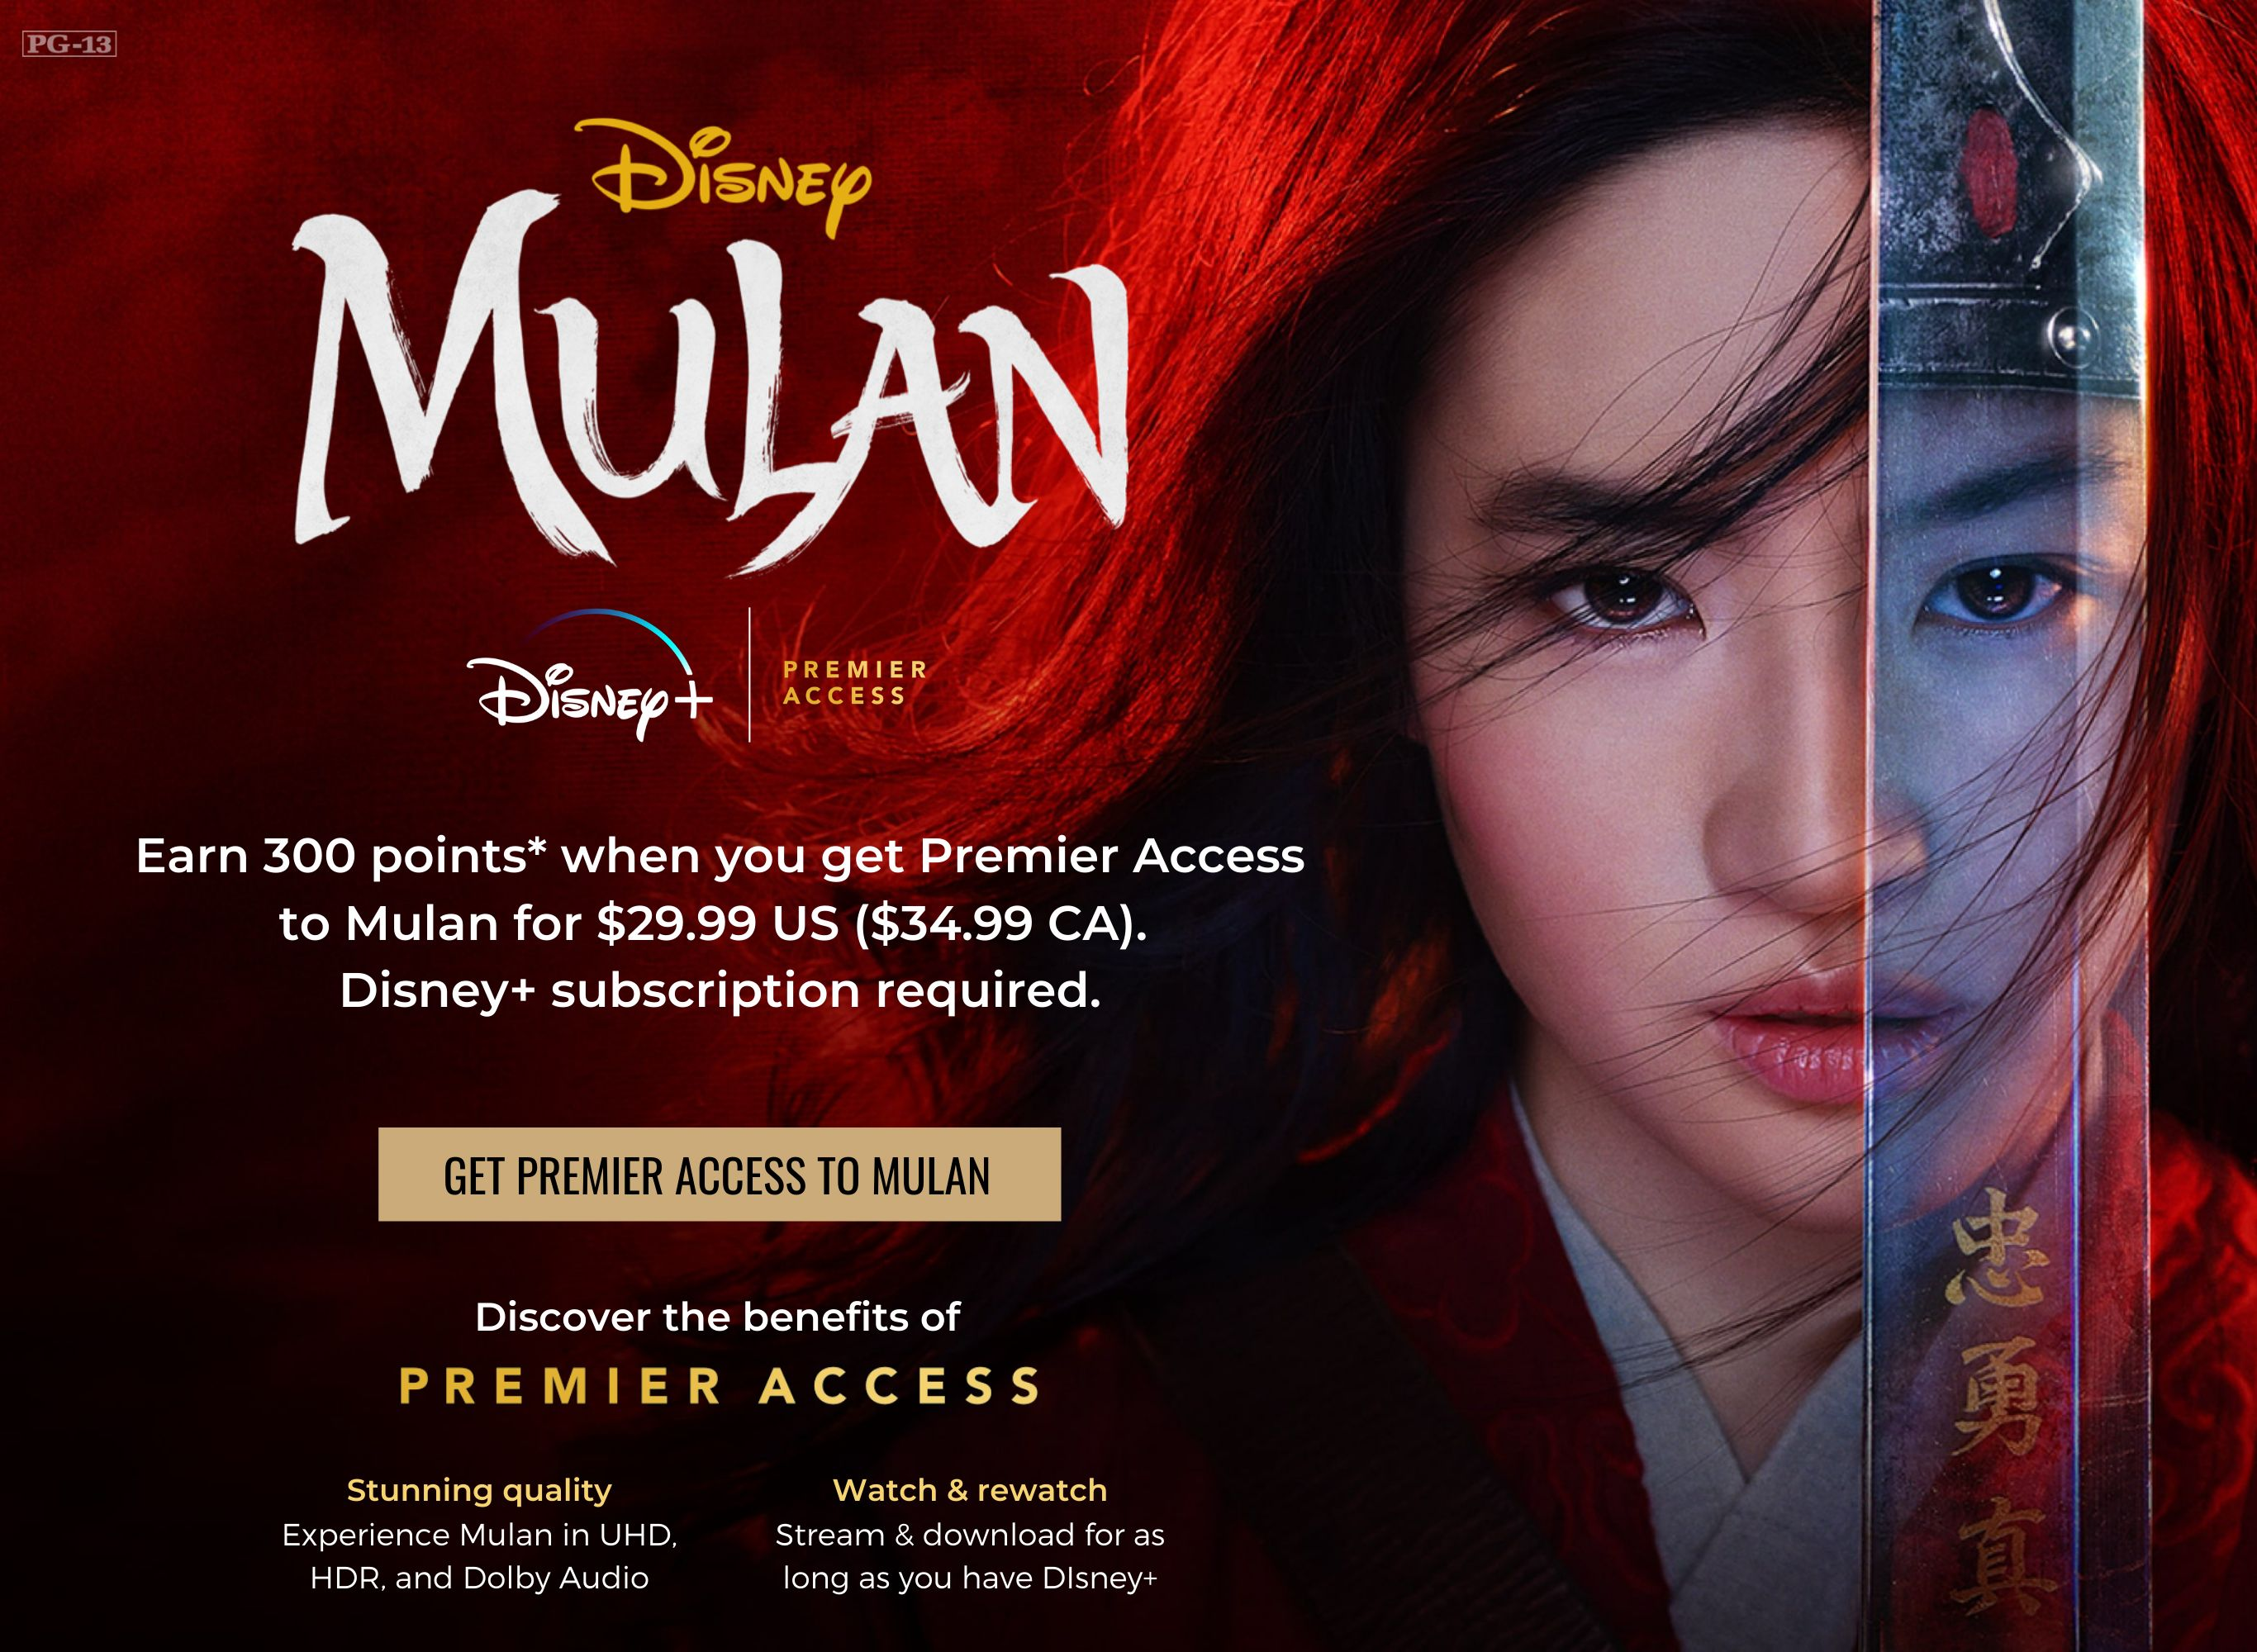 Mulan Premier Access Main hero